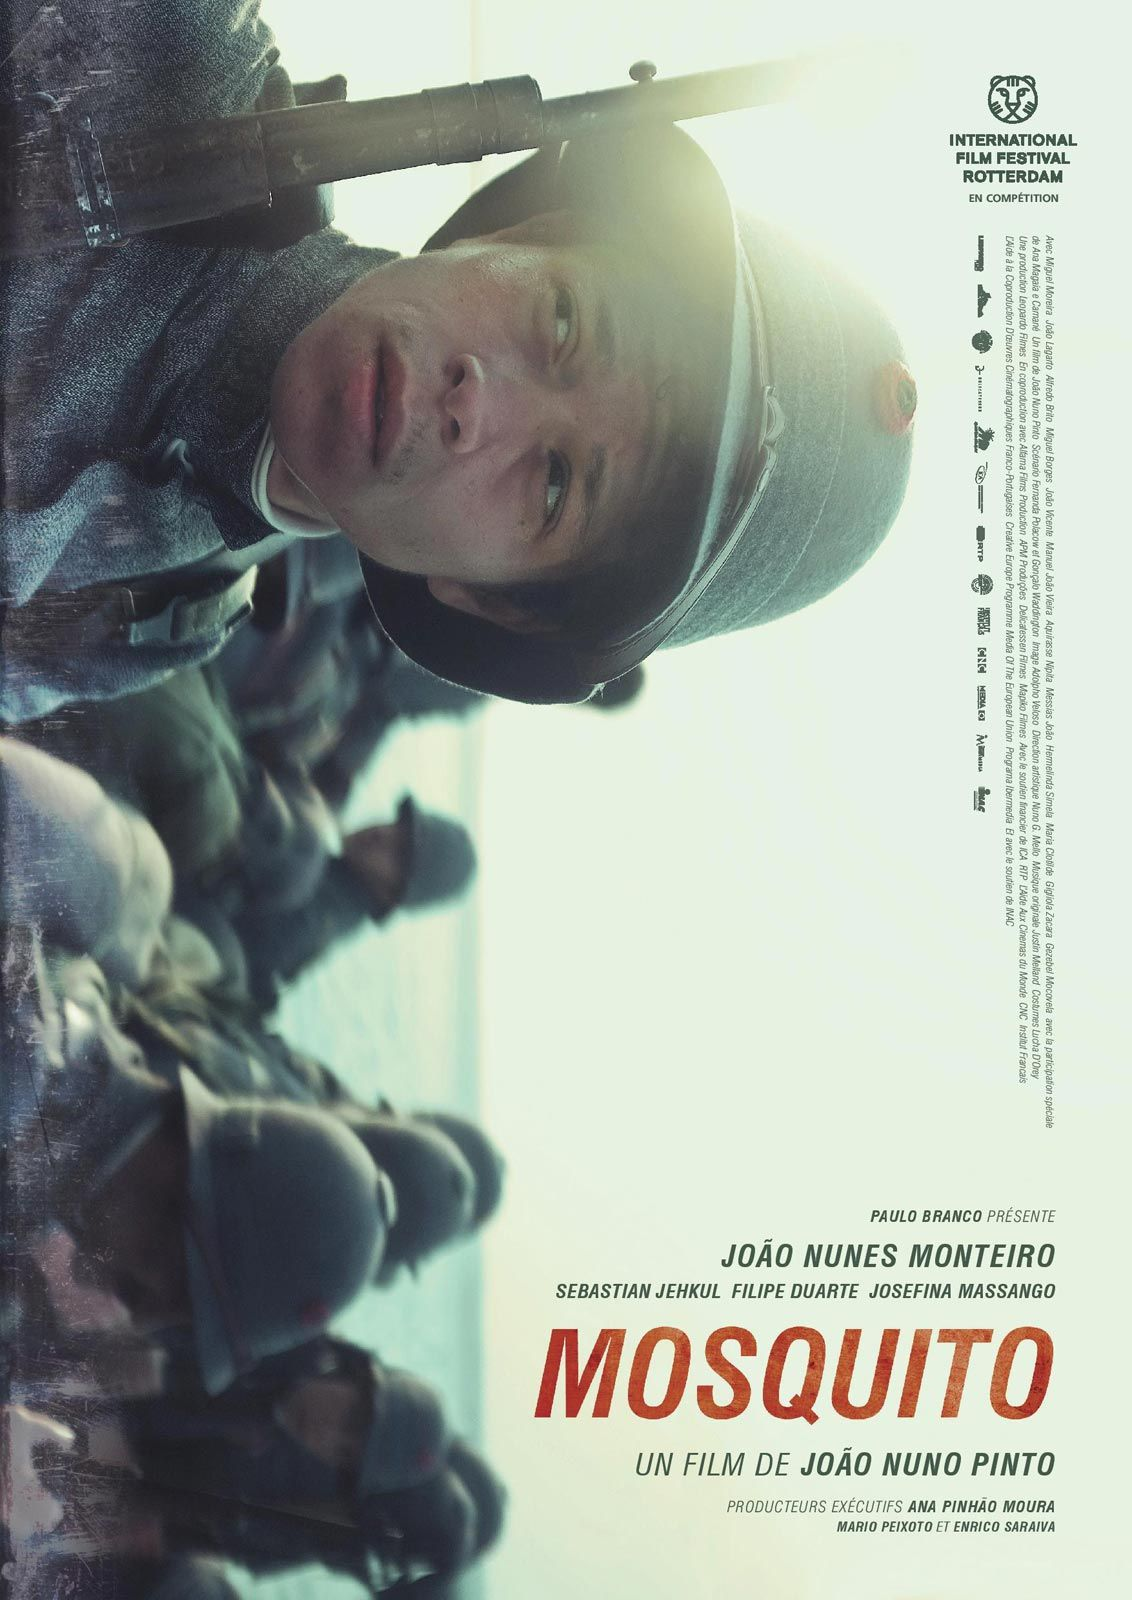 Vostfr Mosquito 2020 Film Complet Streaming Vf En Francais